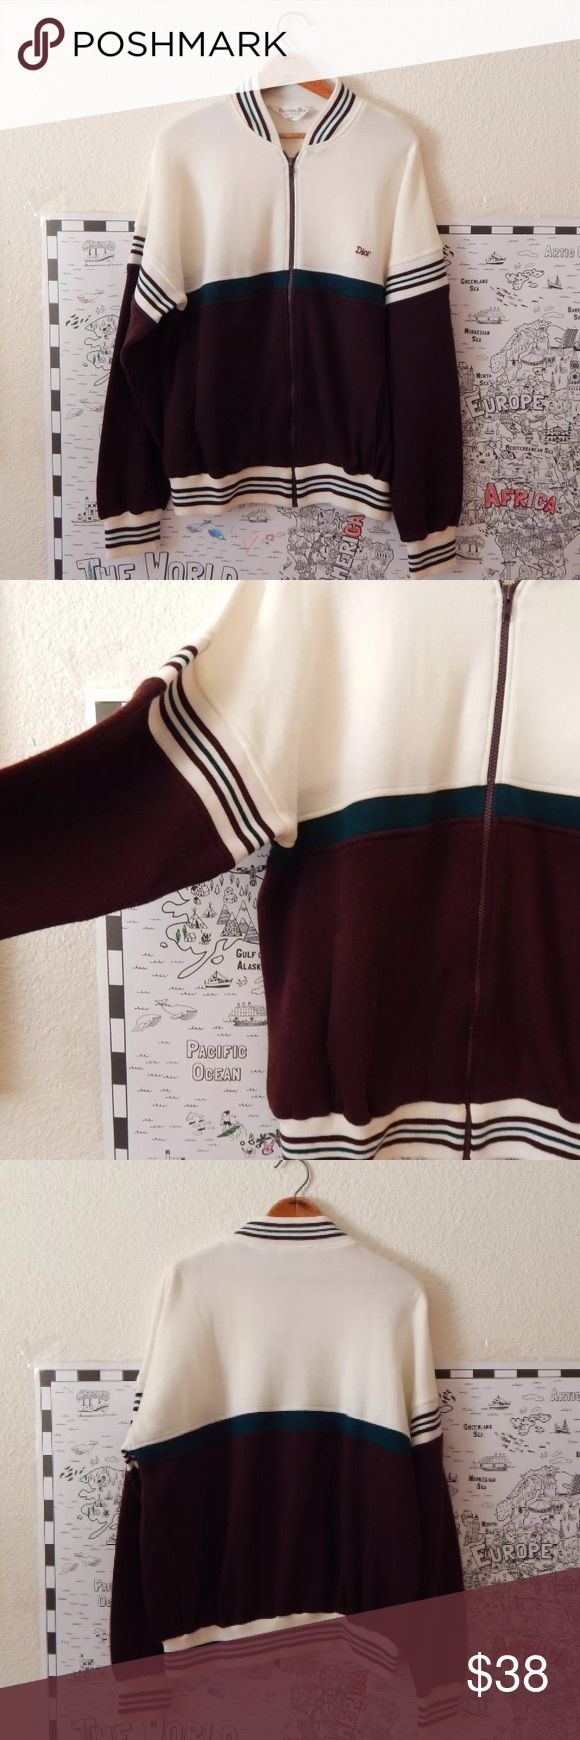 """Vintage Mens Christian Dior Striped Zip Up Sweater Vintage Mens Christian Dior White Striped Zip Up Sweater   100% Acrylic Made in Taiwan Front Pockets Machine or Hand Wash Dry Flat ----->>>Small spot on back, Some pilling, Slight bleeding of color in dior  Tag Size XLarge  Chest circumference: 46"""" (116.84 cm) Hem circumference: 38"""" (96.52 cm) Length: 26"""" (66.04 cm) Sleeve length (from neckline): 31.5"""" (80.01 cm) Shoulder to shoulder: 38"""" (96.52 cm) vintage Sweaters Zip Up"""